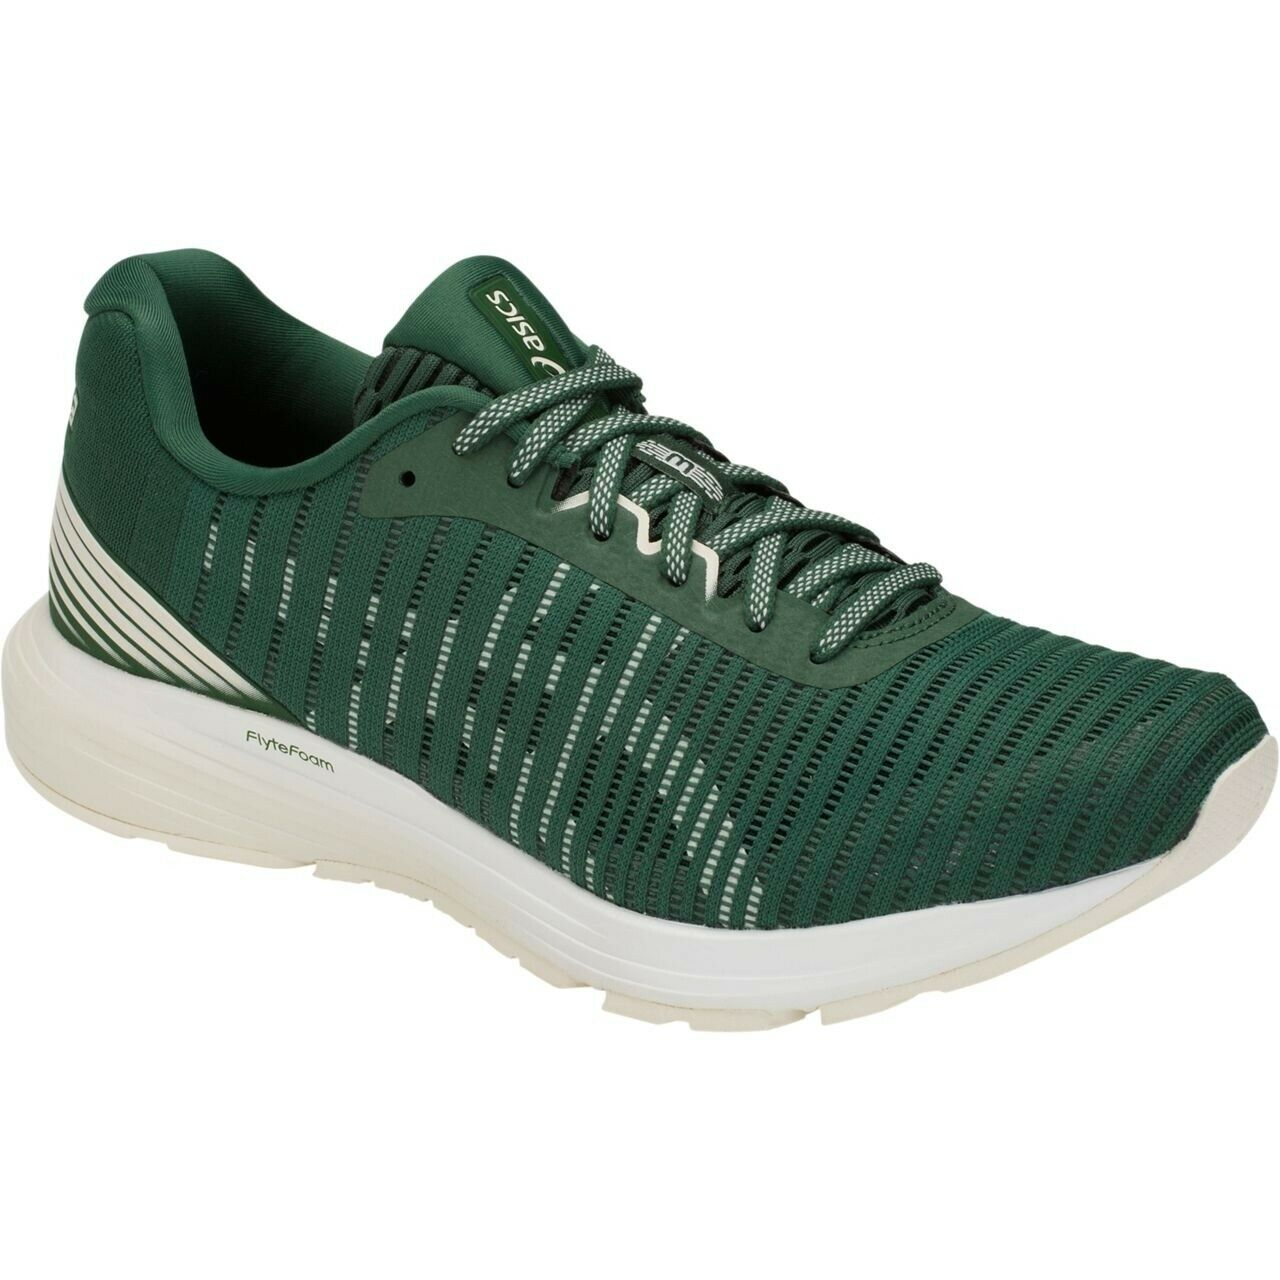 ASICS DynaFlyte 3 Sound shoes - Men's Running - Green - 1011A185.300